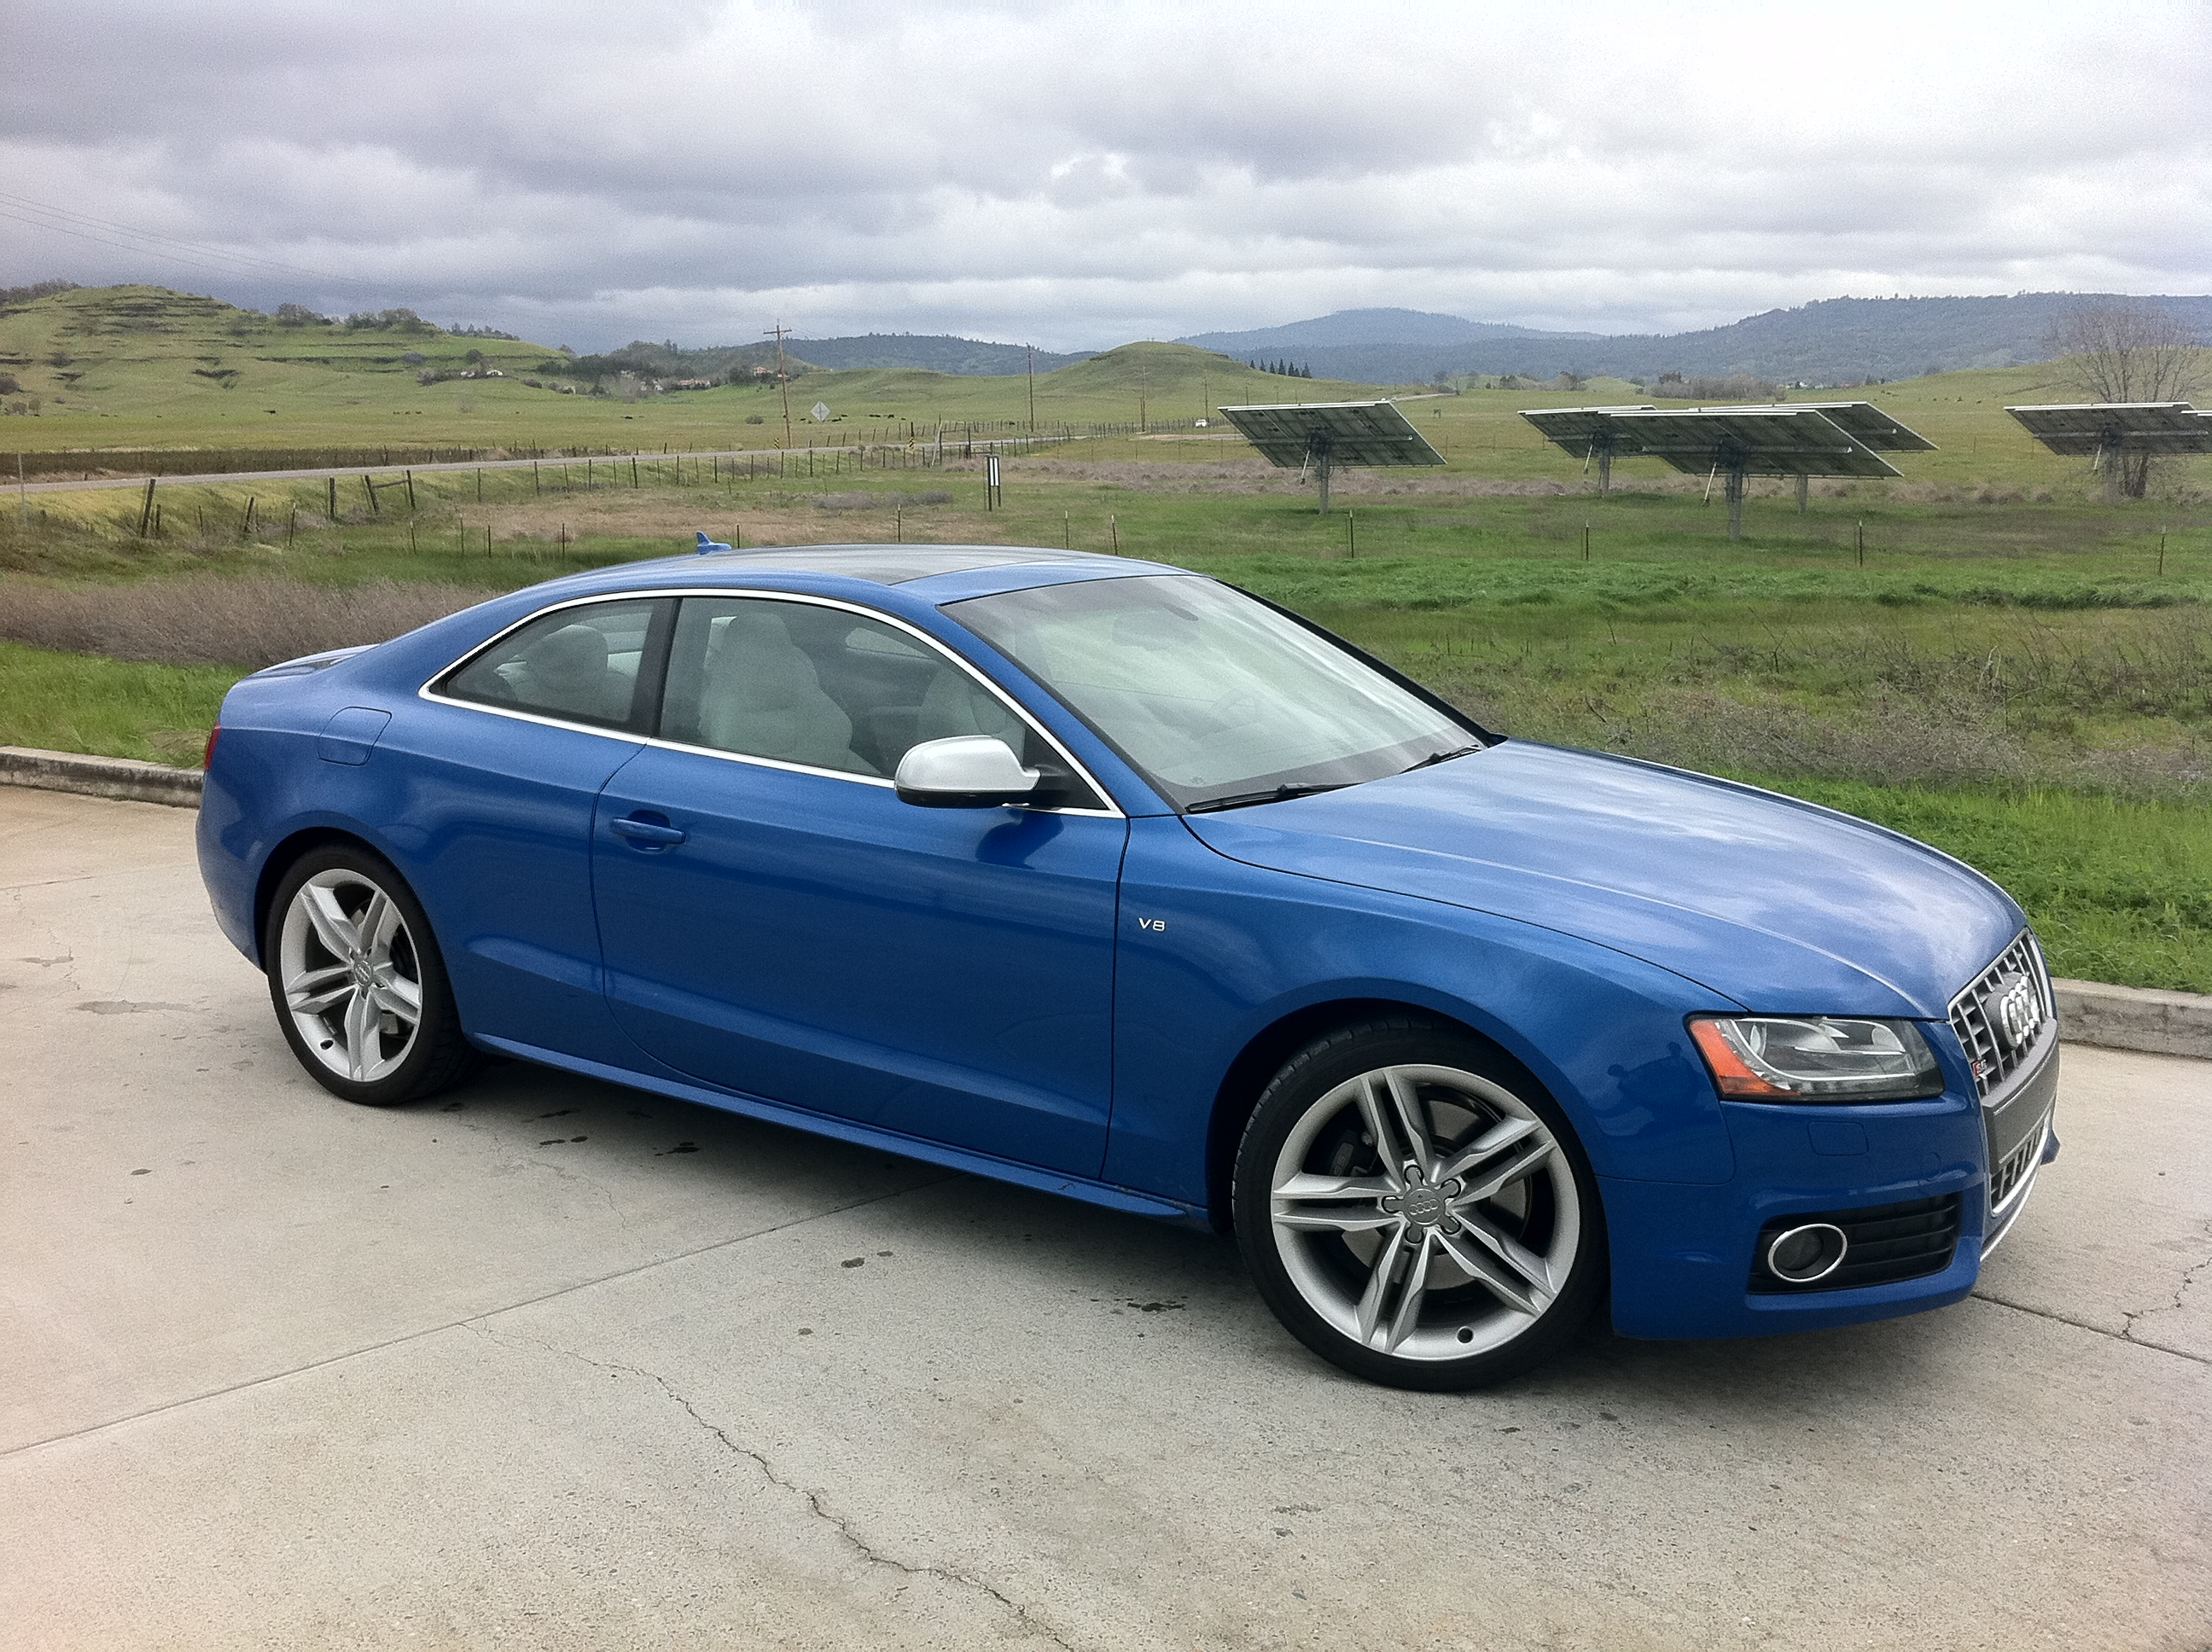 2011 Audi S5 Review A Modern Grand Tourer With Emotion